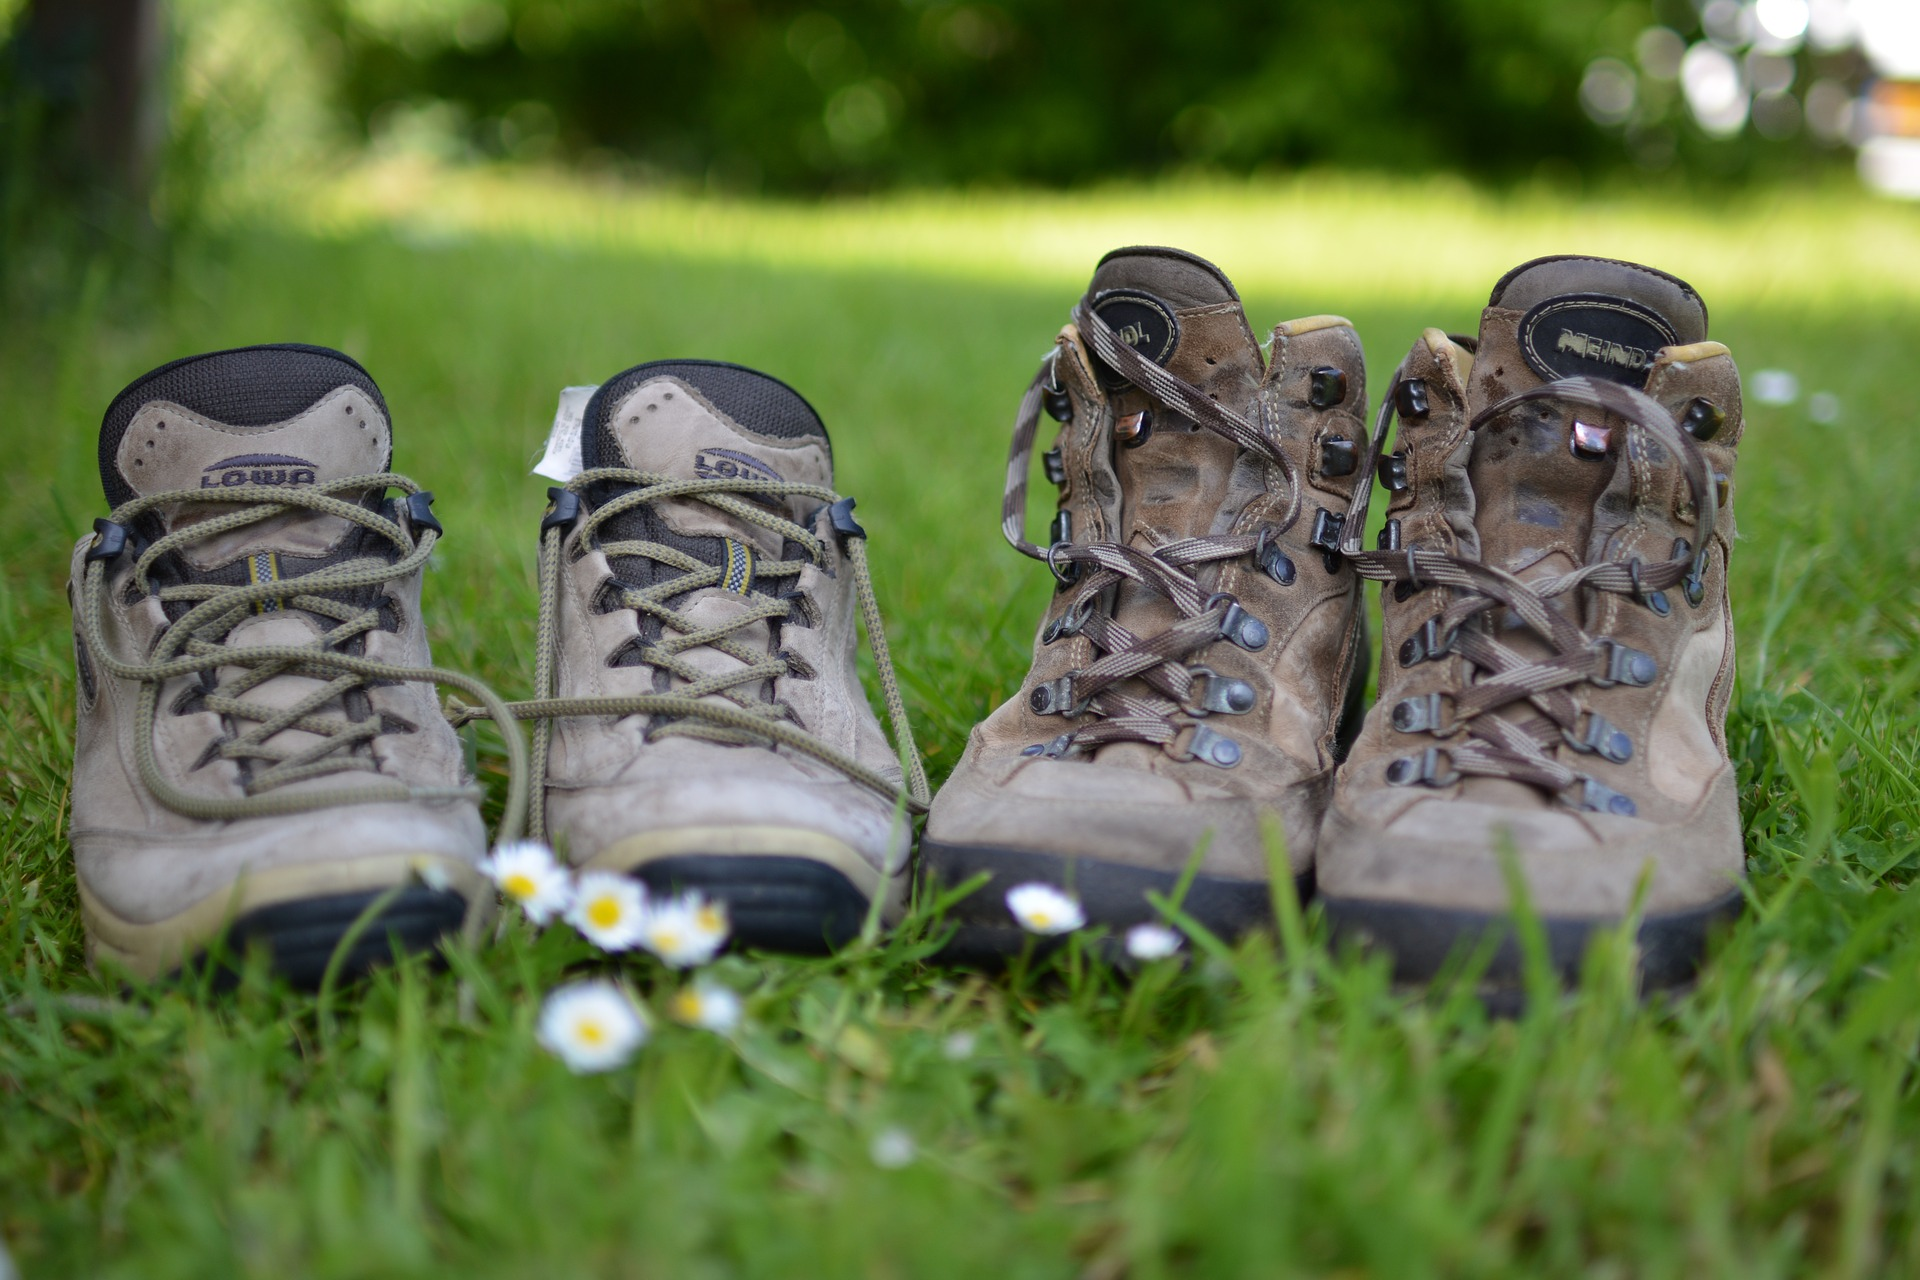 Hiking Boots vs. Trail Runners - Go All Outdoors